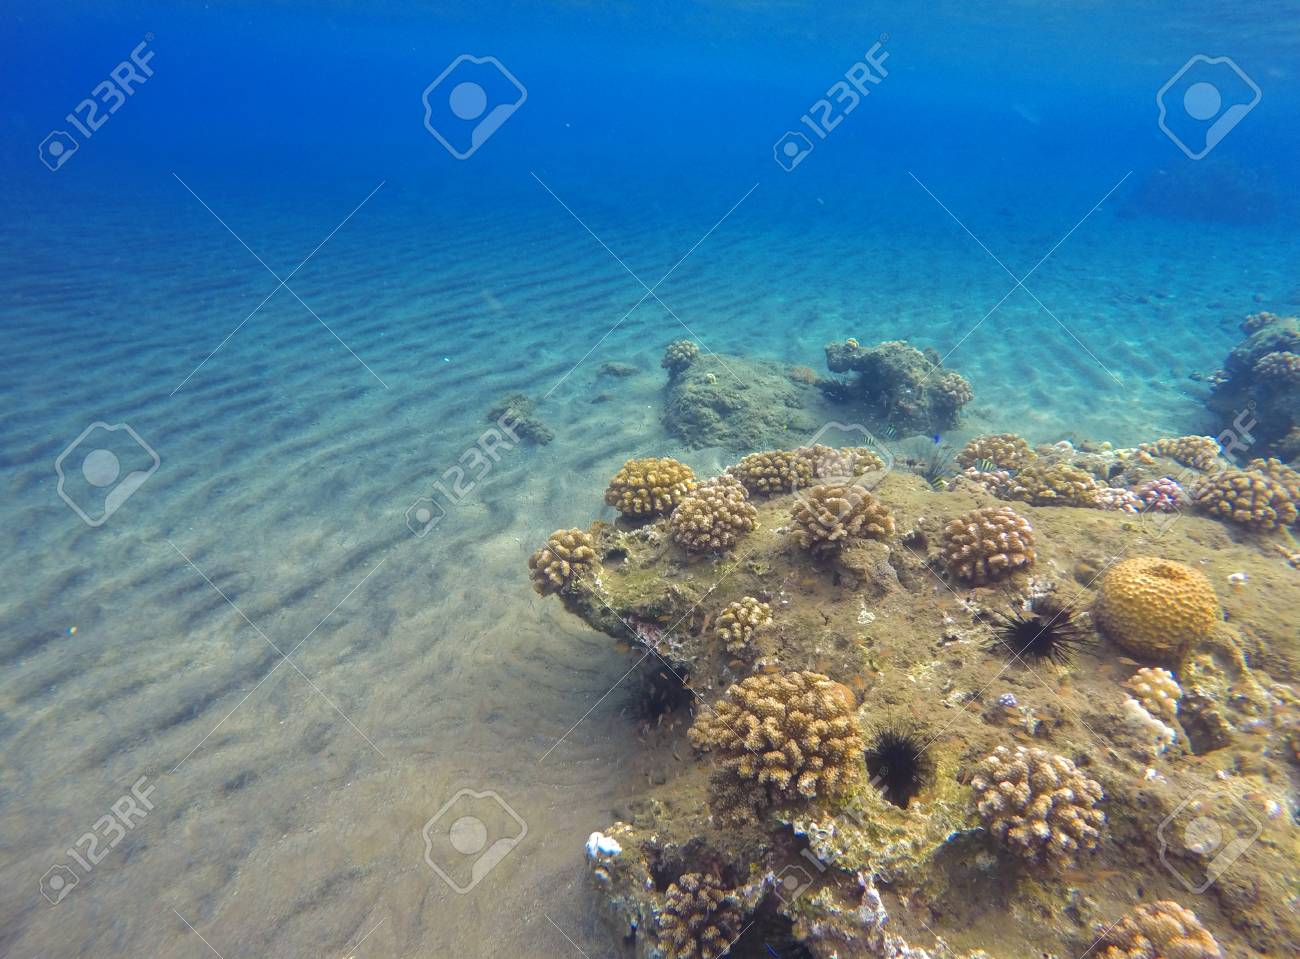 Tropic Sea Landscape With Sand Bottom And Coral Reef. Colorful ...